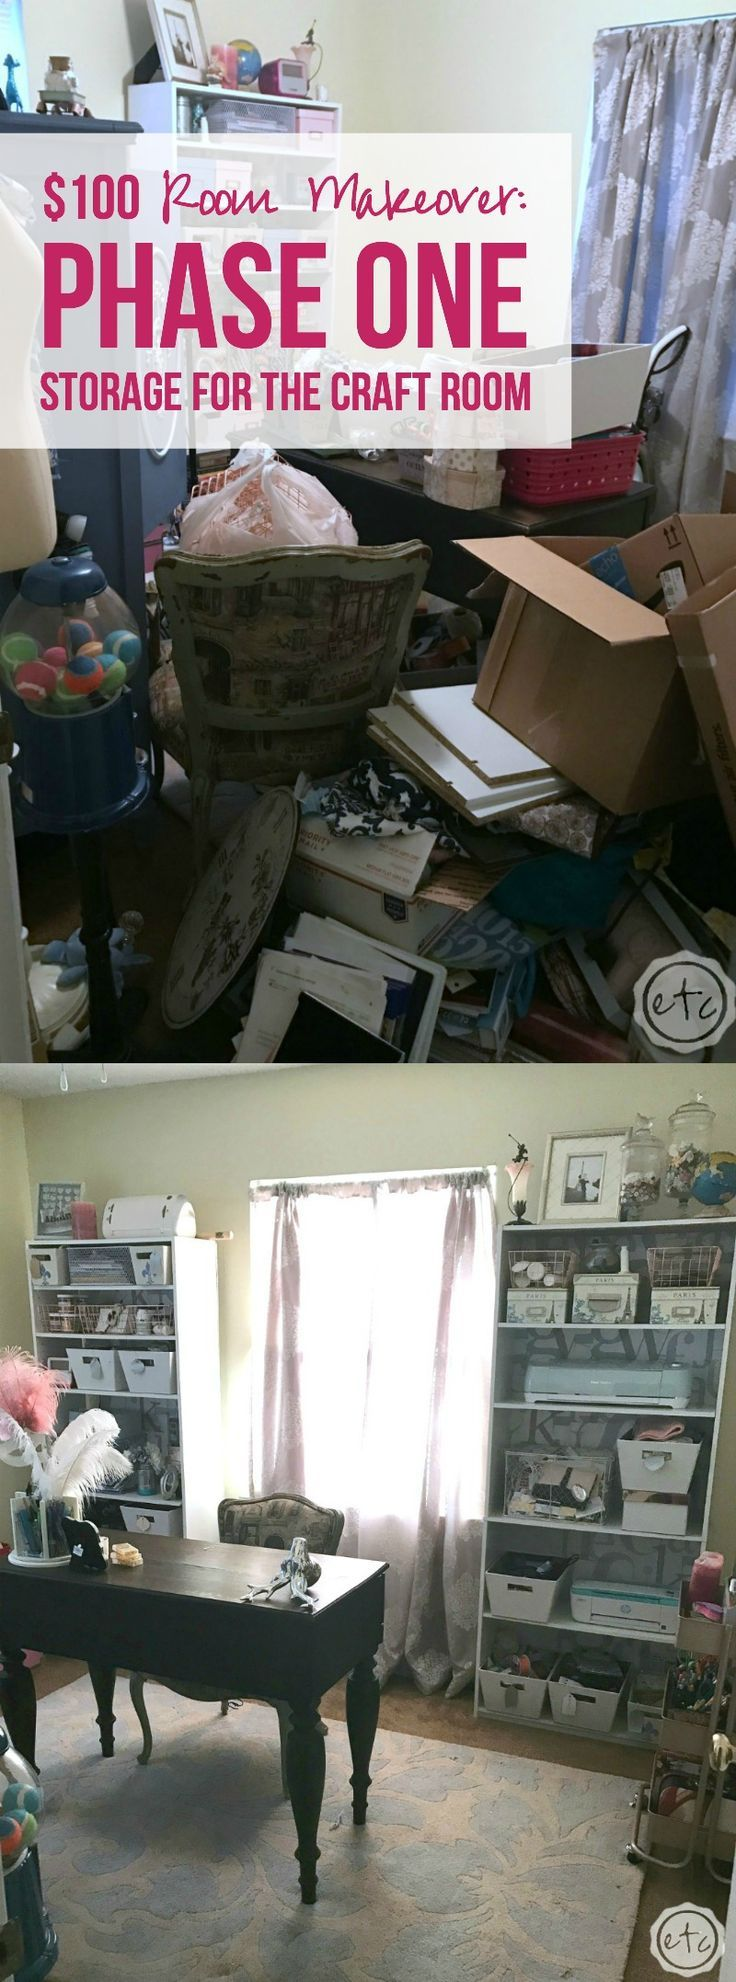 Remember the little craft room makeover I'm right in the middle of? Well it's week two and let me just put it out there… I think simply cleaning this room is going to be the biggest transformation. *wink wink* I mean do you remember the before photos from last week? They're basically giant piles of …